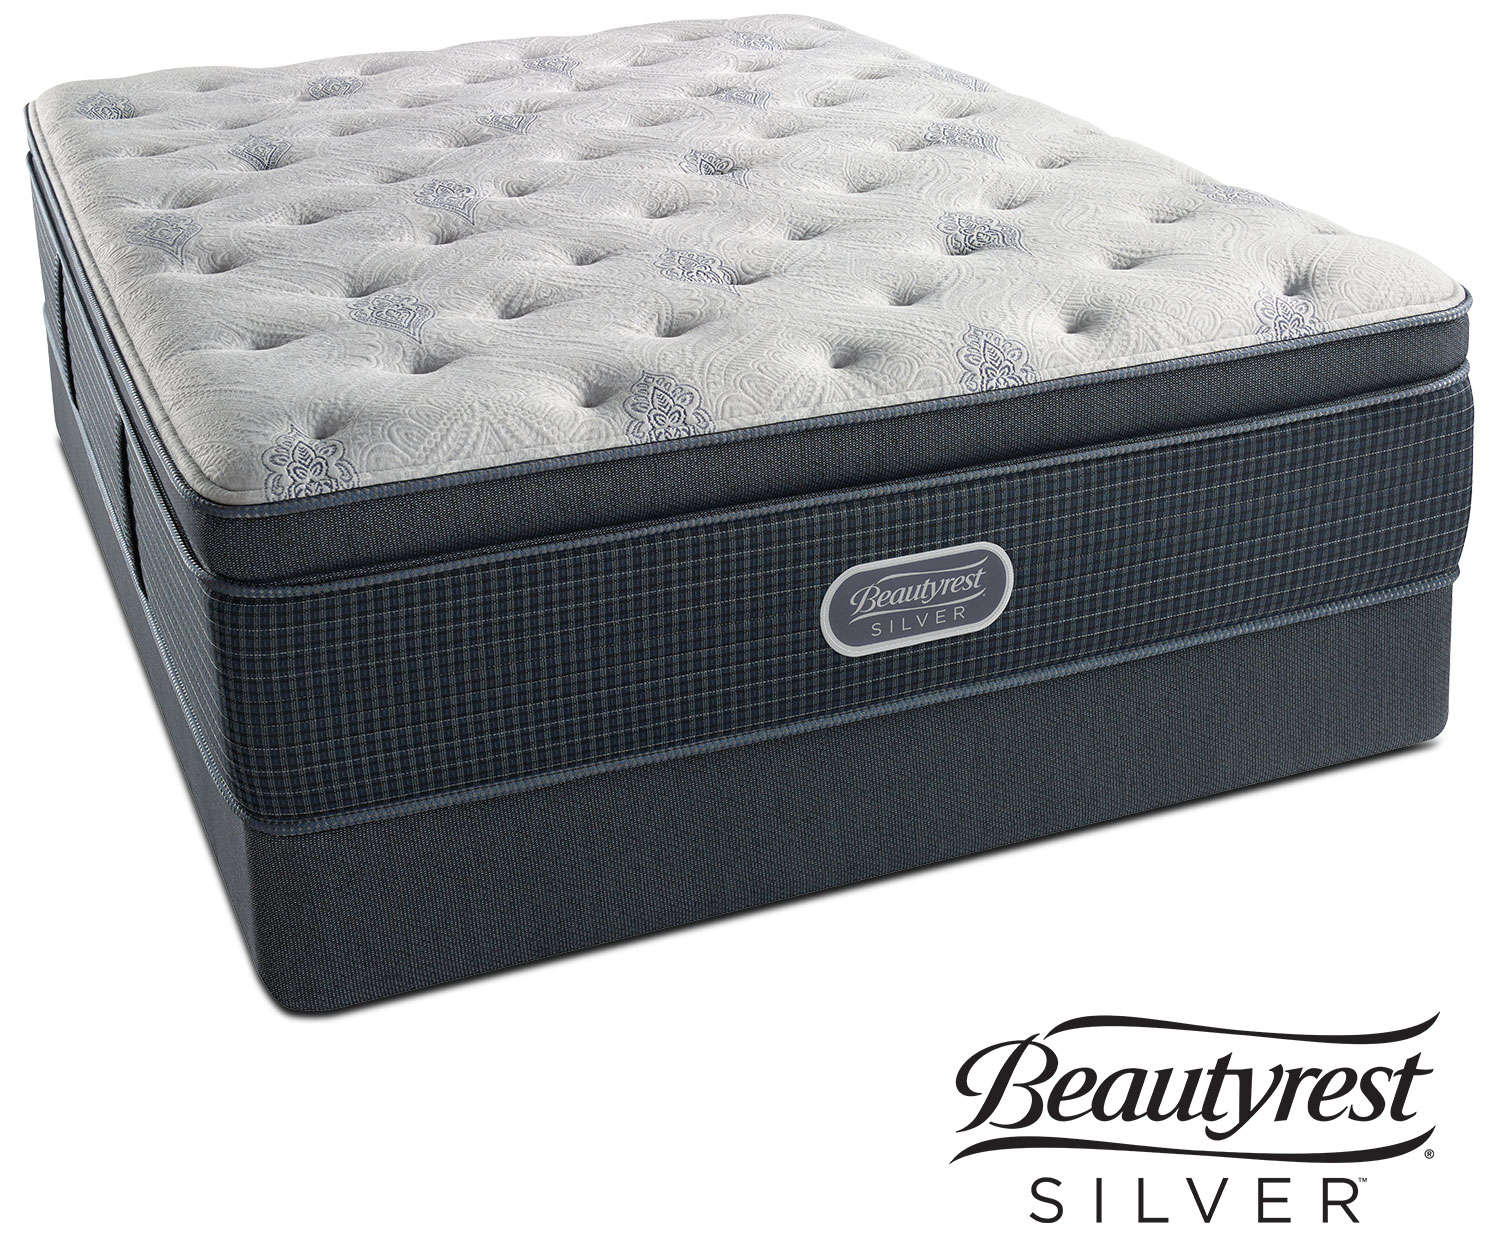 products bellagio plush sets queen briaza twin coil cities mattress browse minneapolis set ii st serta mattresses pocketed